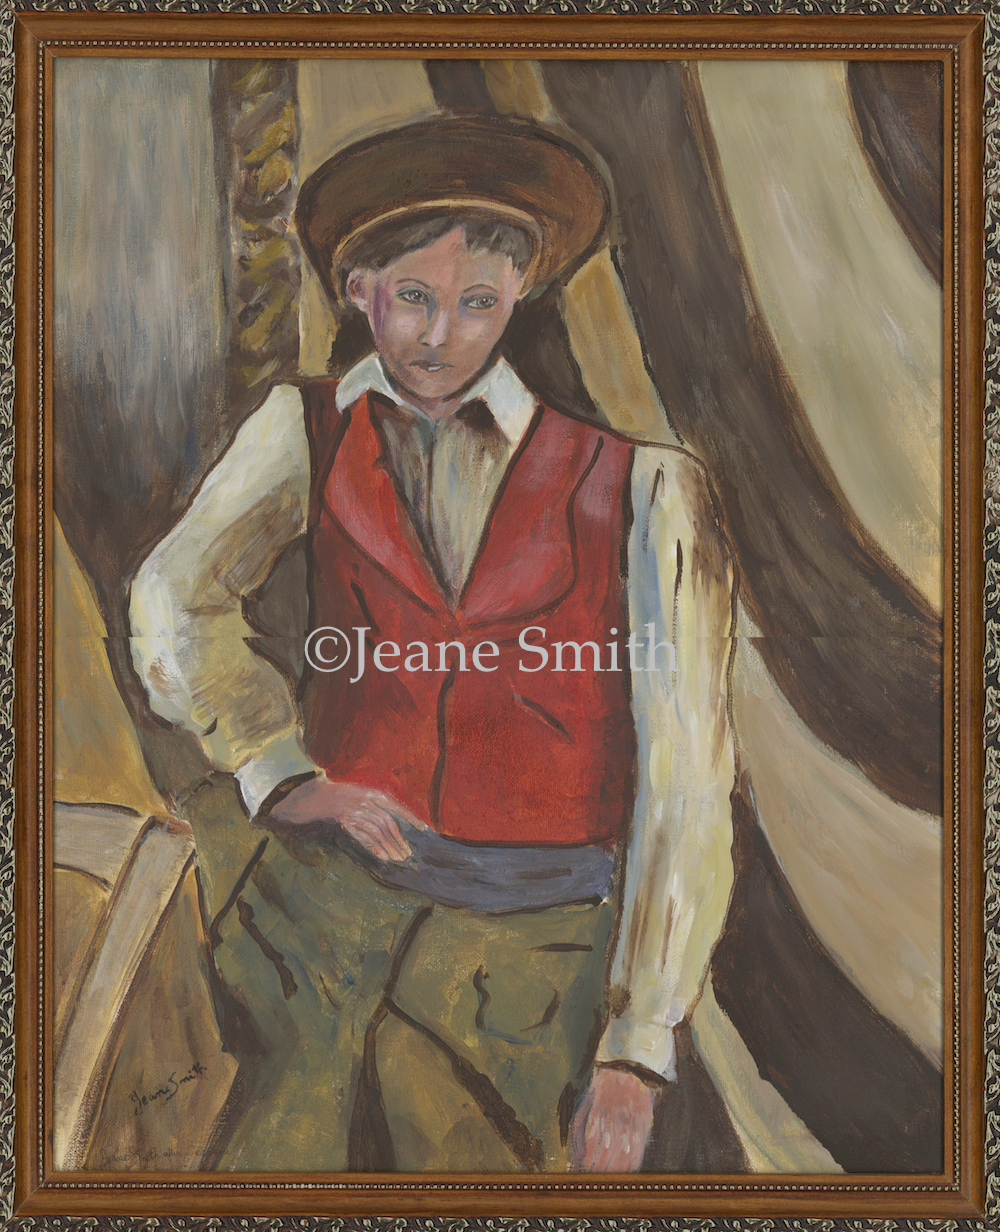 The Boy in the Red Vest